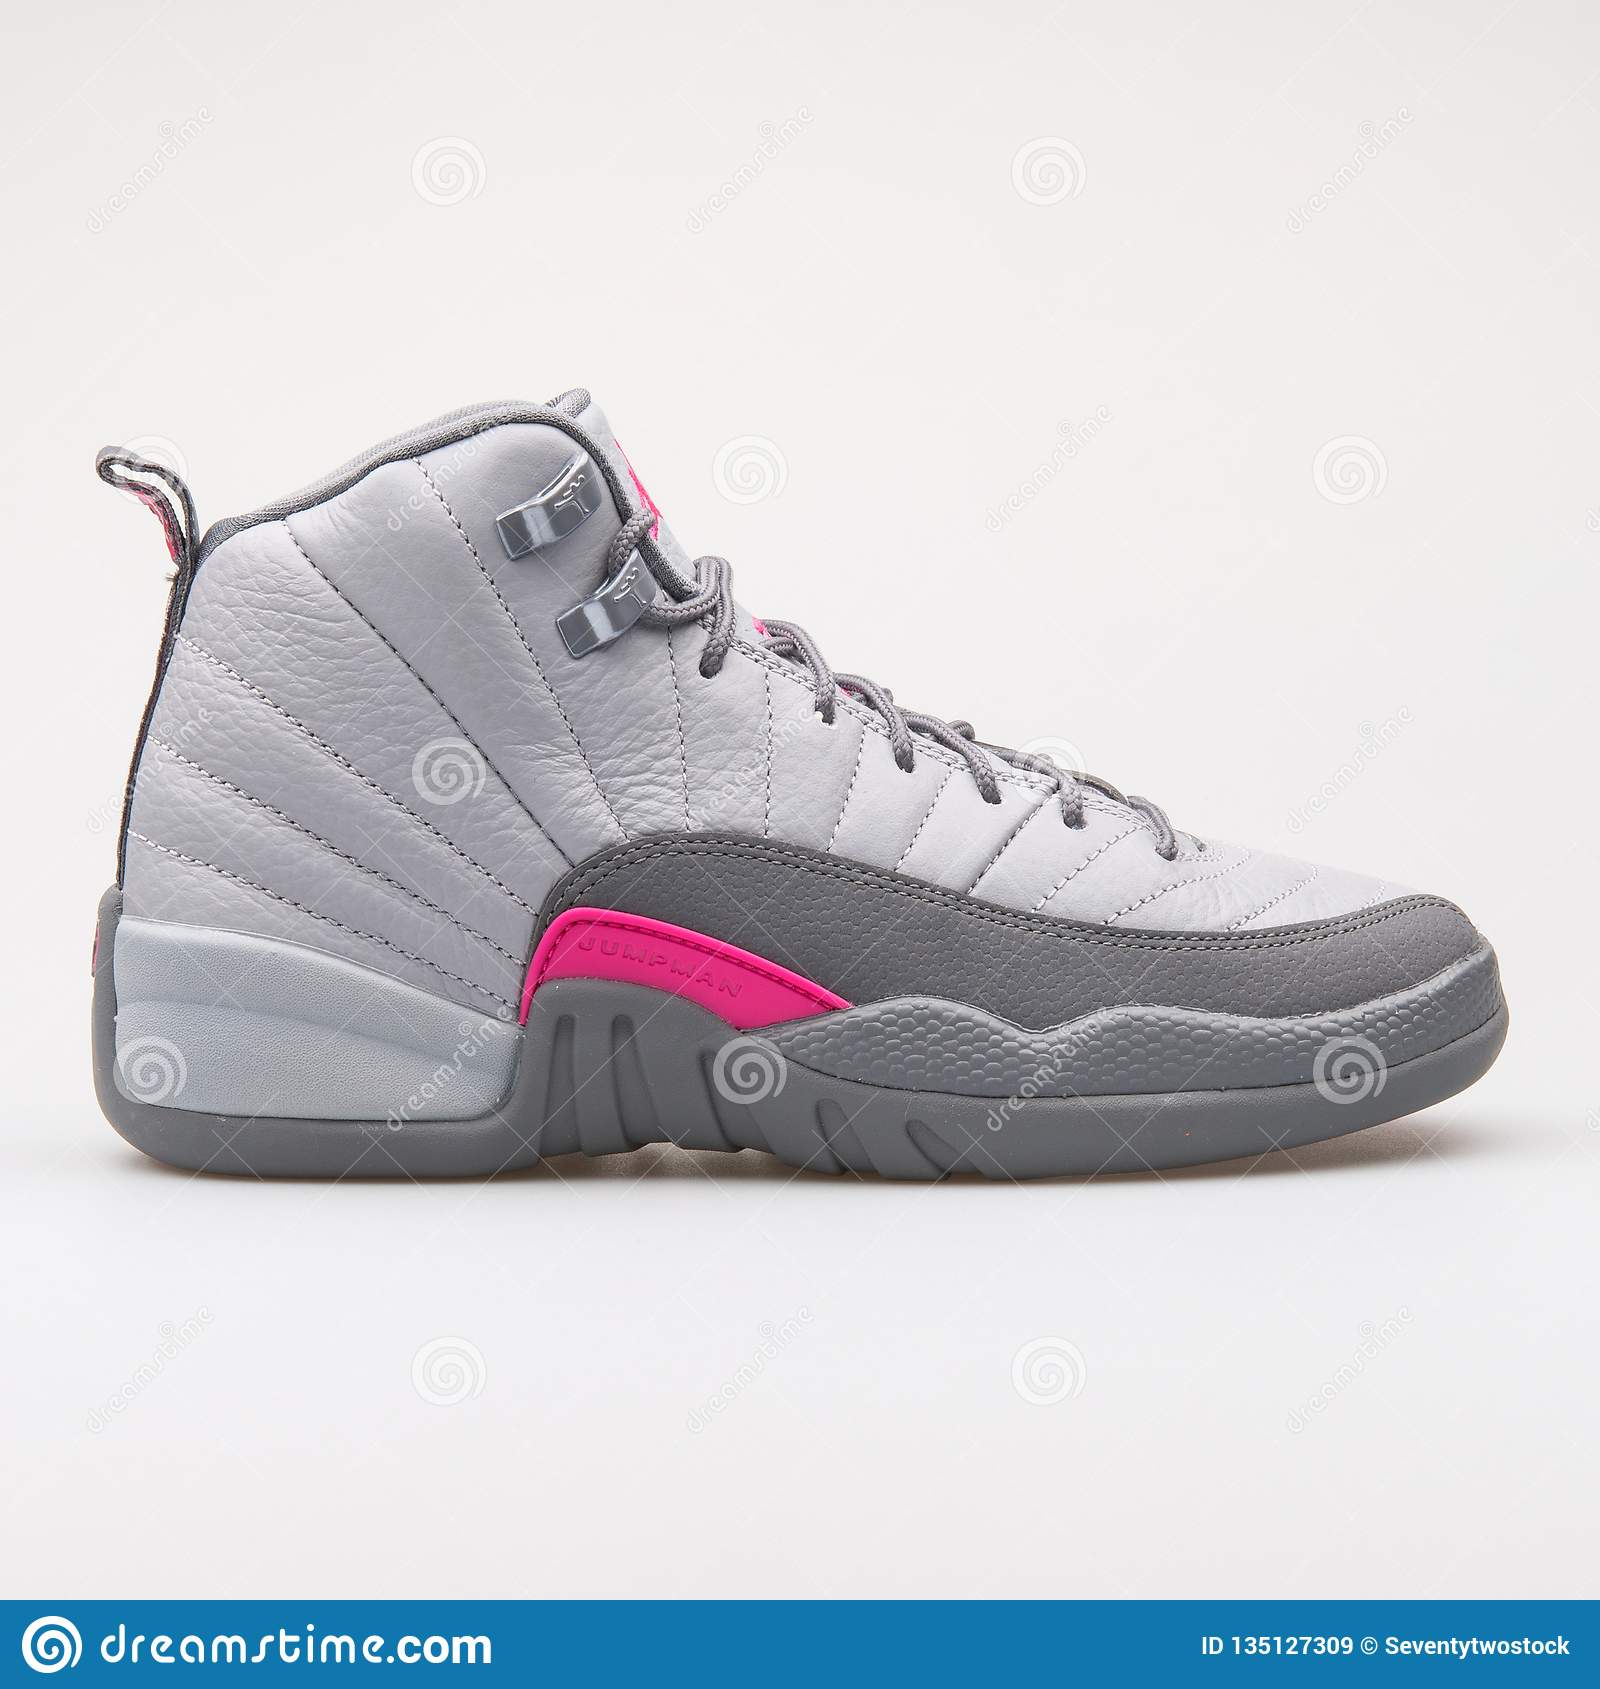 save off a3cb2 bc534 Nike Air Jordan 12 Retro GG grey and pink sneaker